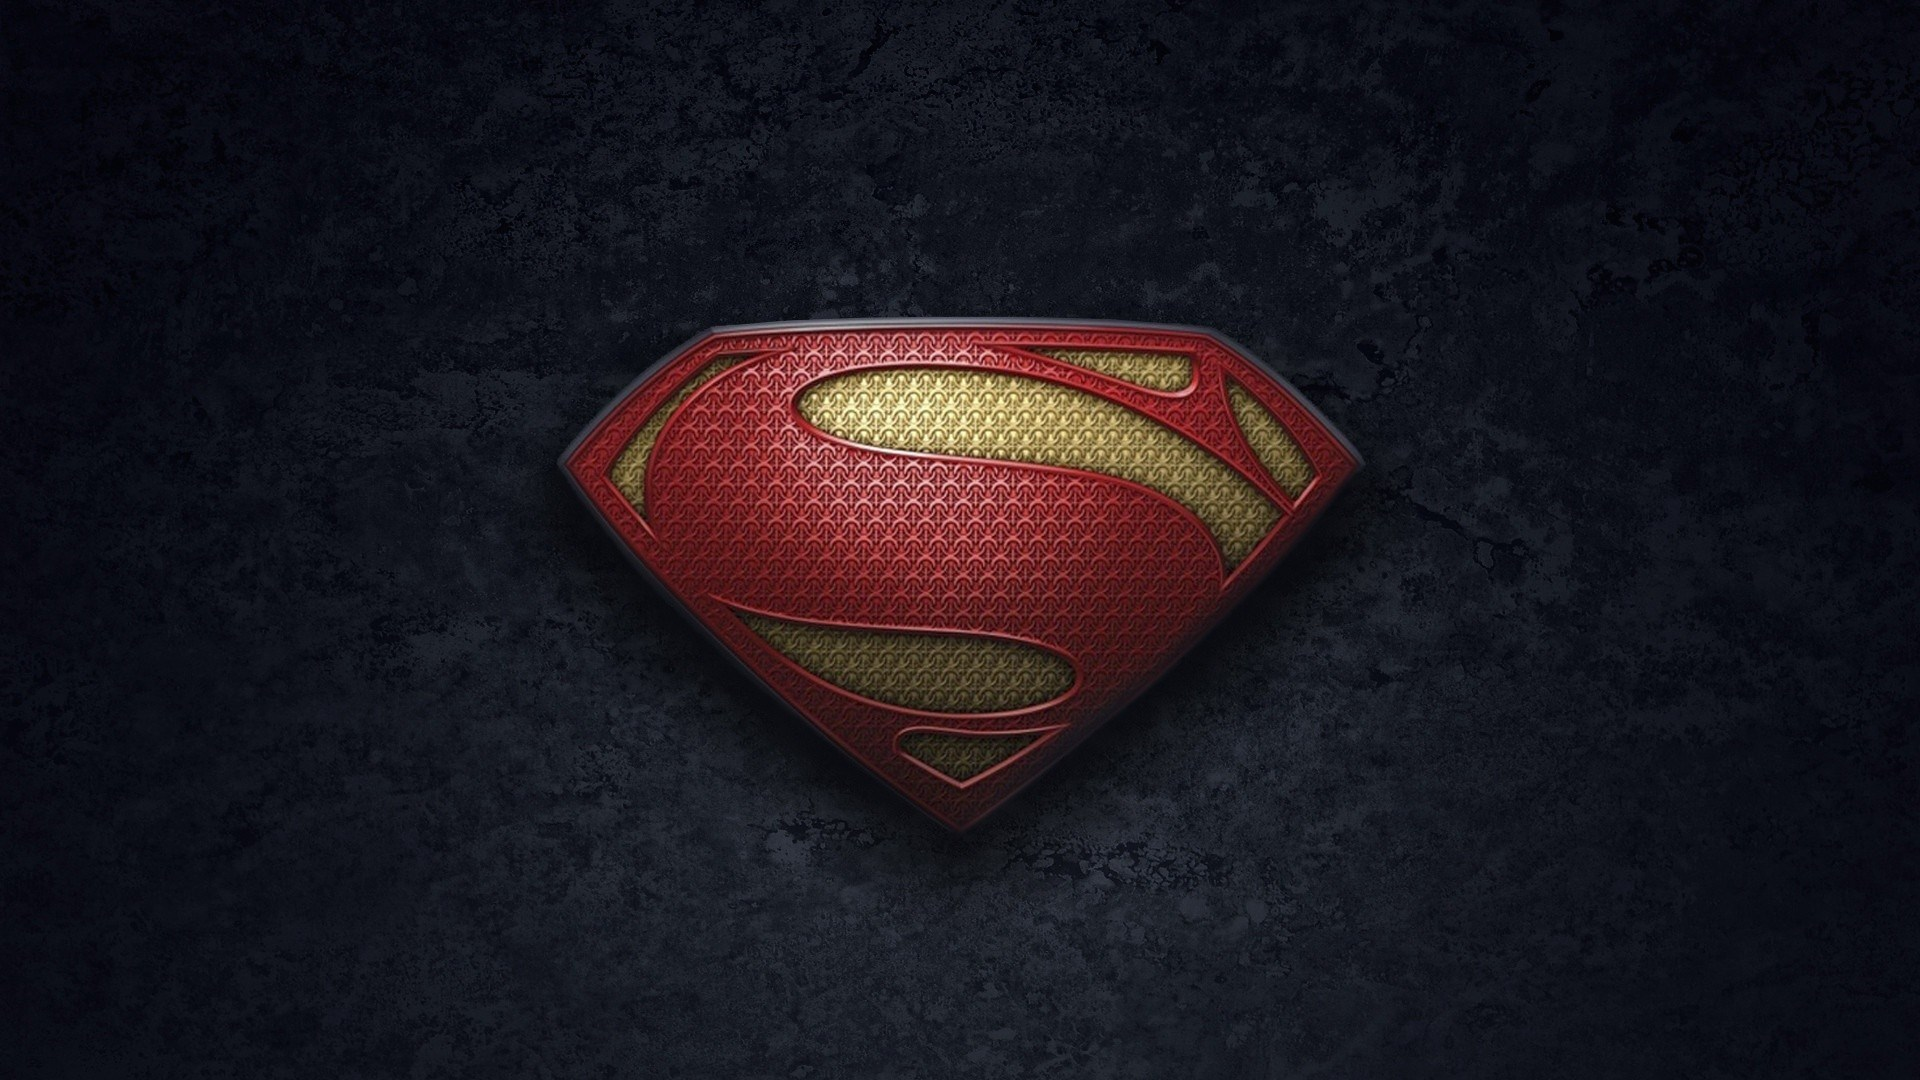 Man Of Steel Wallpaper Iphone 6 Filme Man Of Steel Super Homen Filme Abstrato Papel De Parede